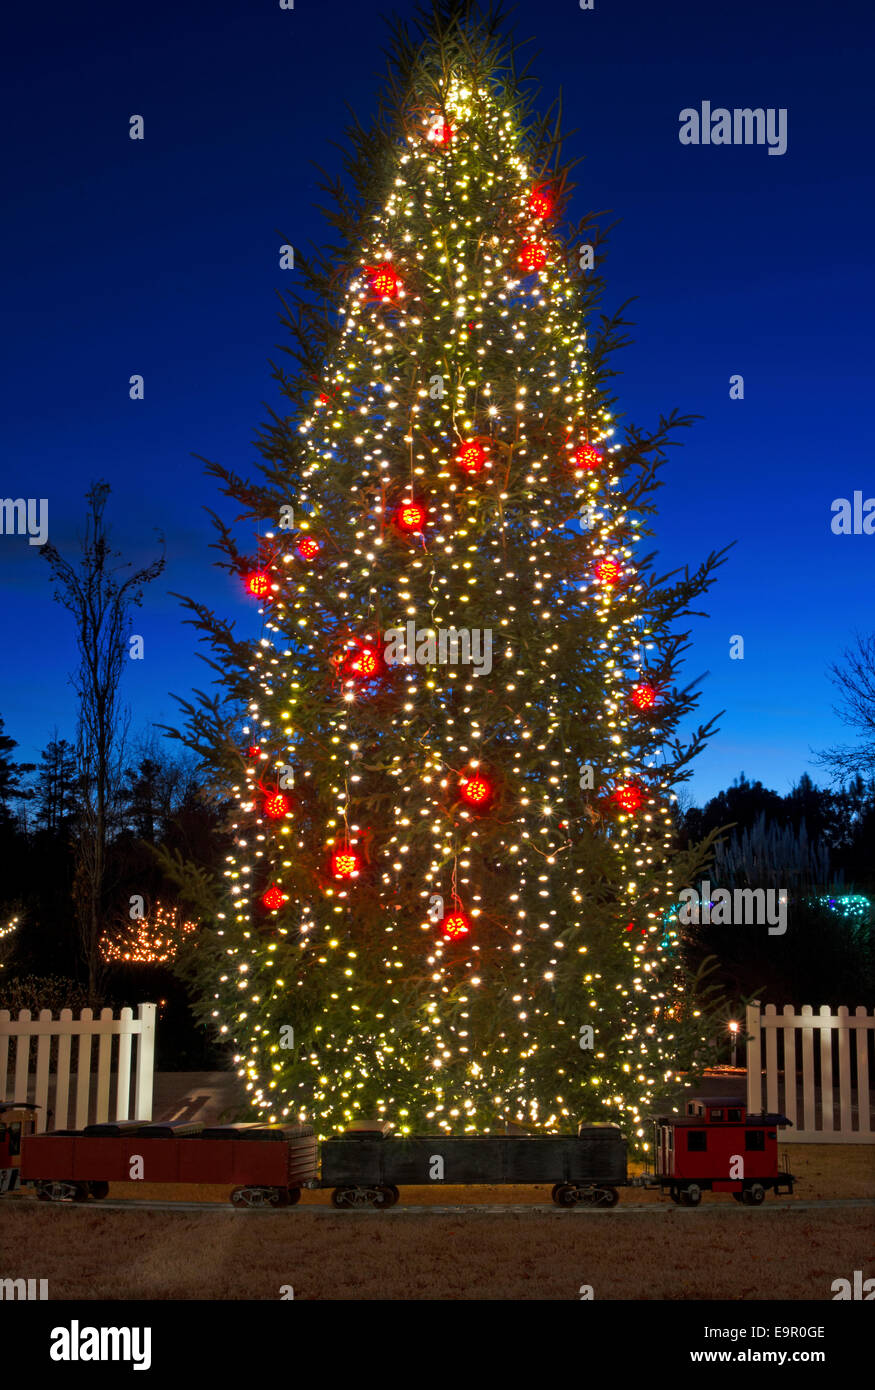 Outdoor christmas trees have been decorated with red and white outdoor christmas trees have been decorated with red and white lights and shot against a brilliant blue sky aloadofball Image collections